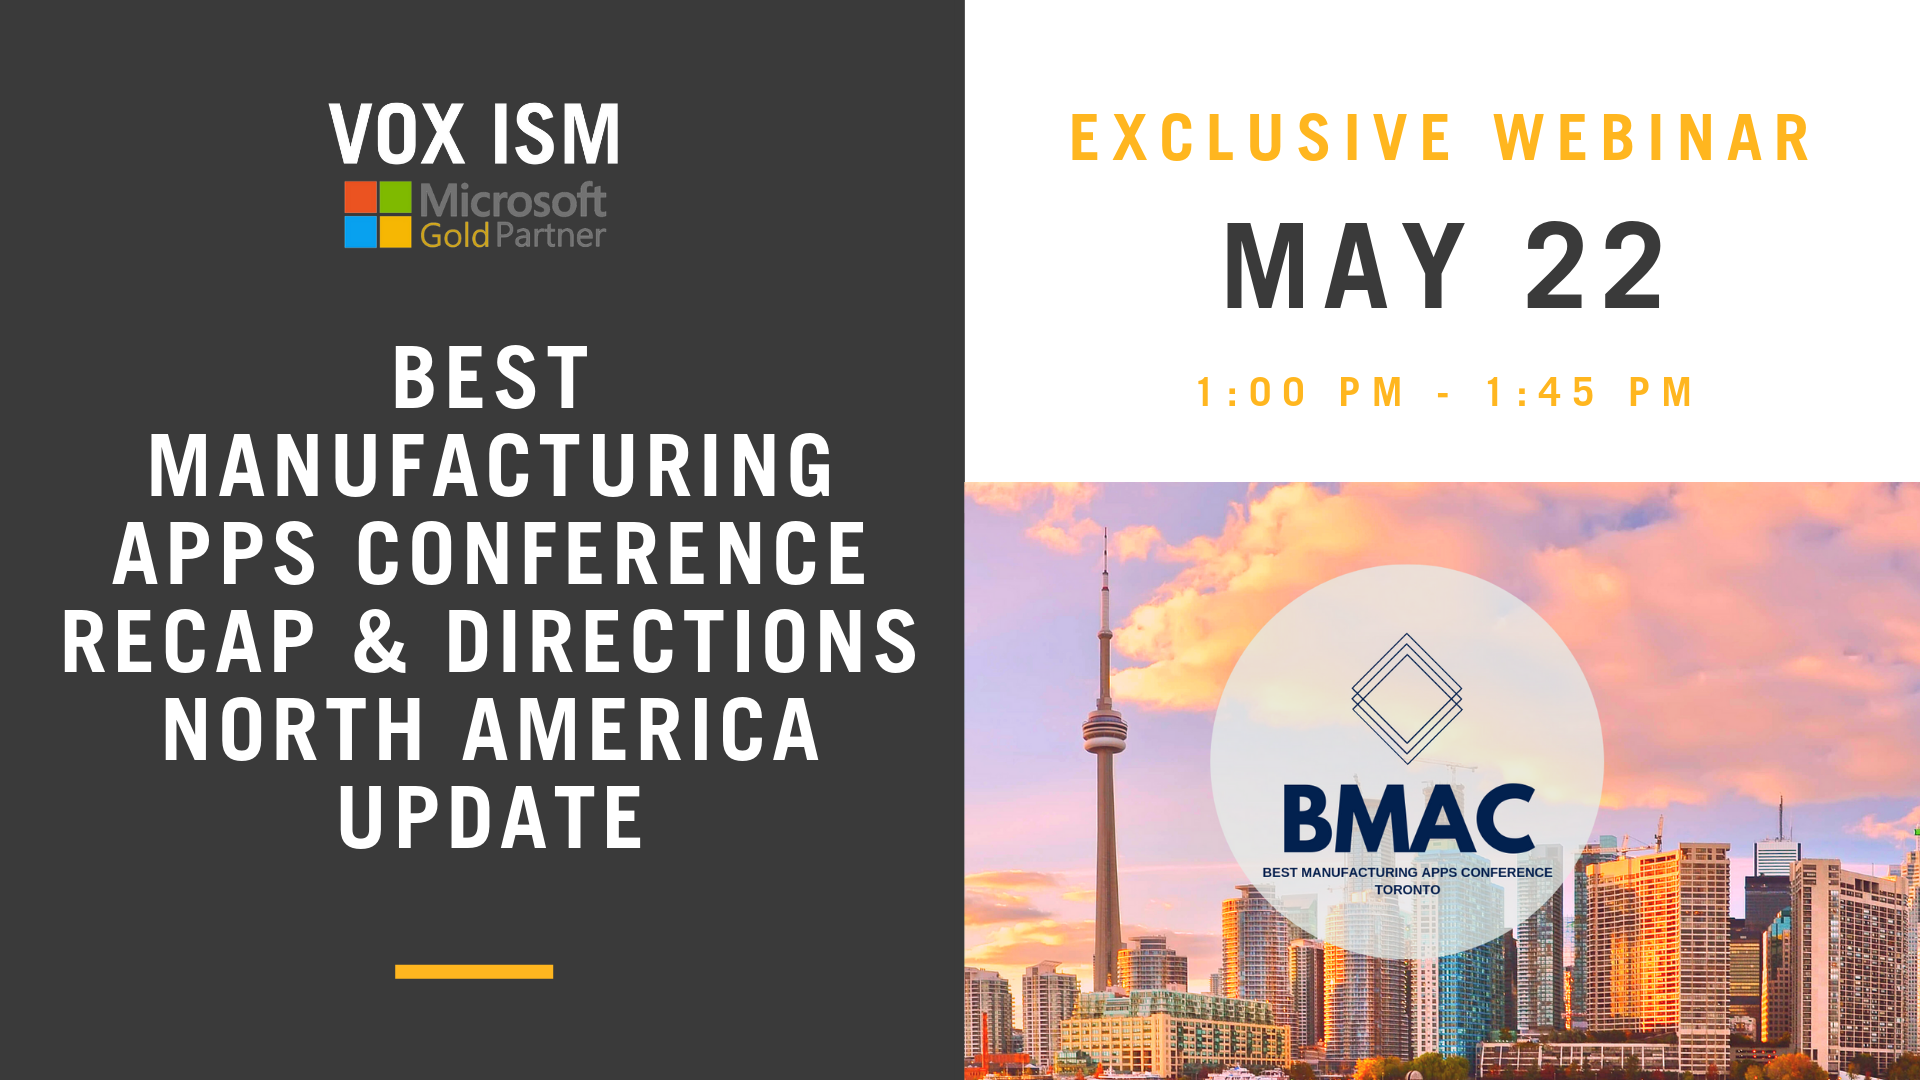 May 22 - Best Manufacturing Apps Conference Recap & Directions North America Update